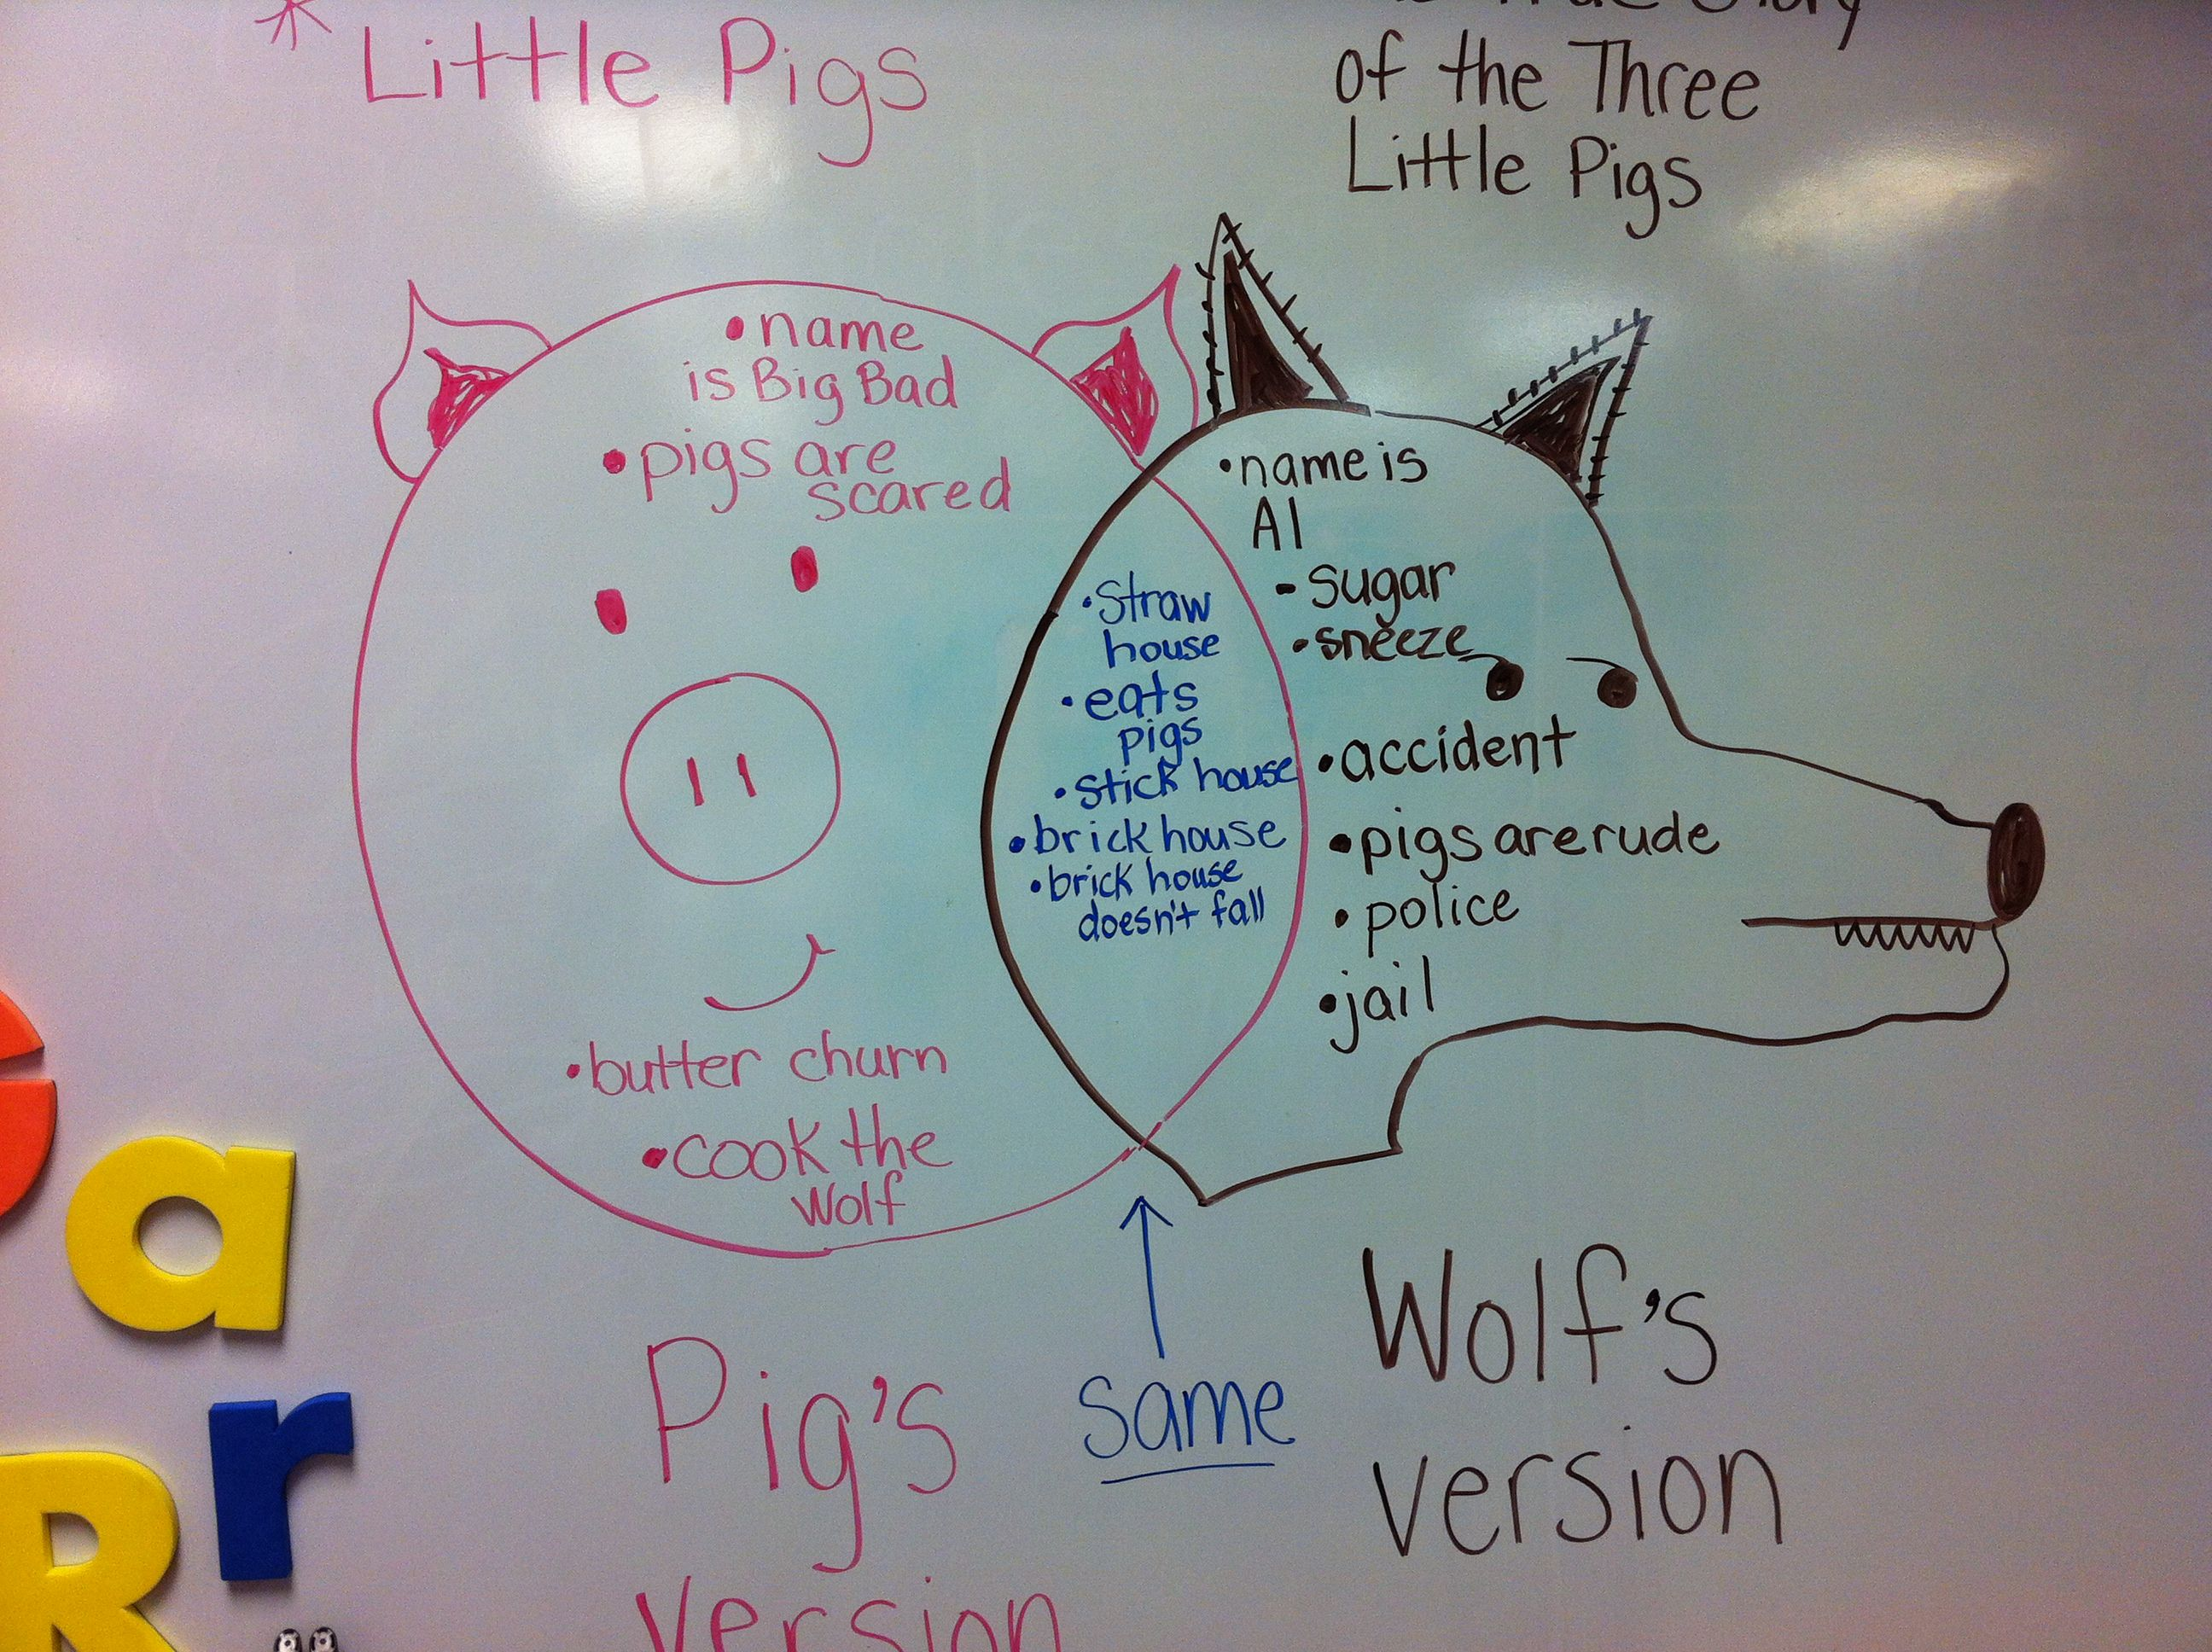 medium resolution of venn diagram i use w my kindergartners to compare contrast the 3 little pigs and the true story of the 3 little pigs